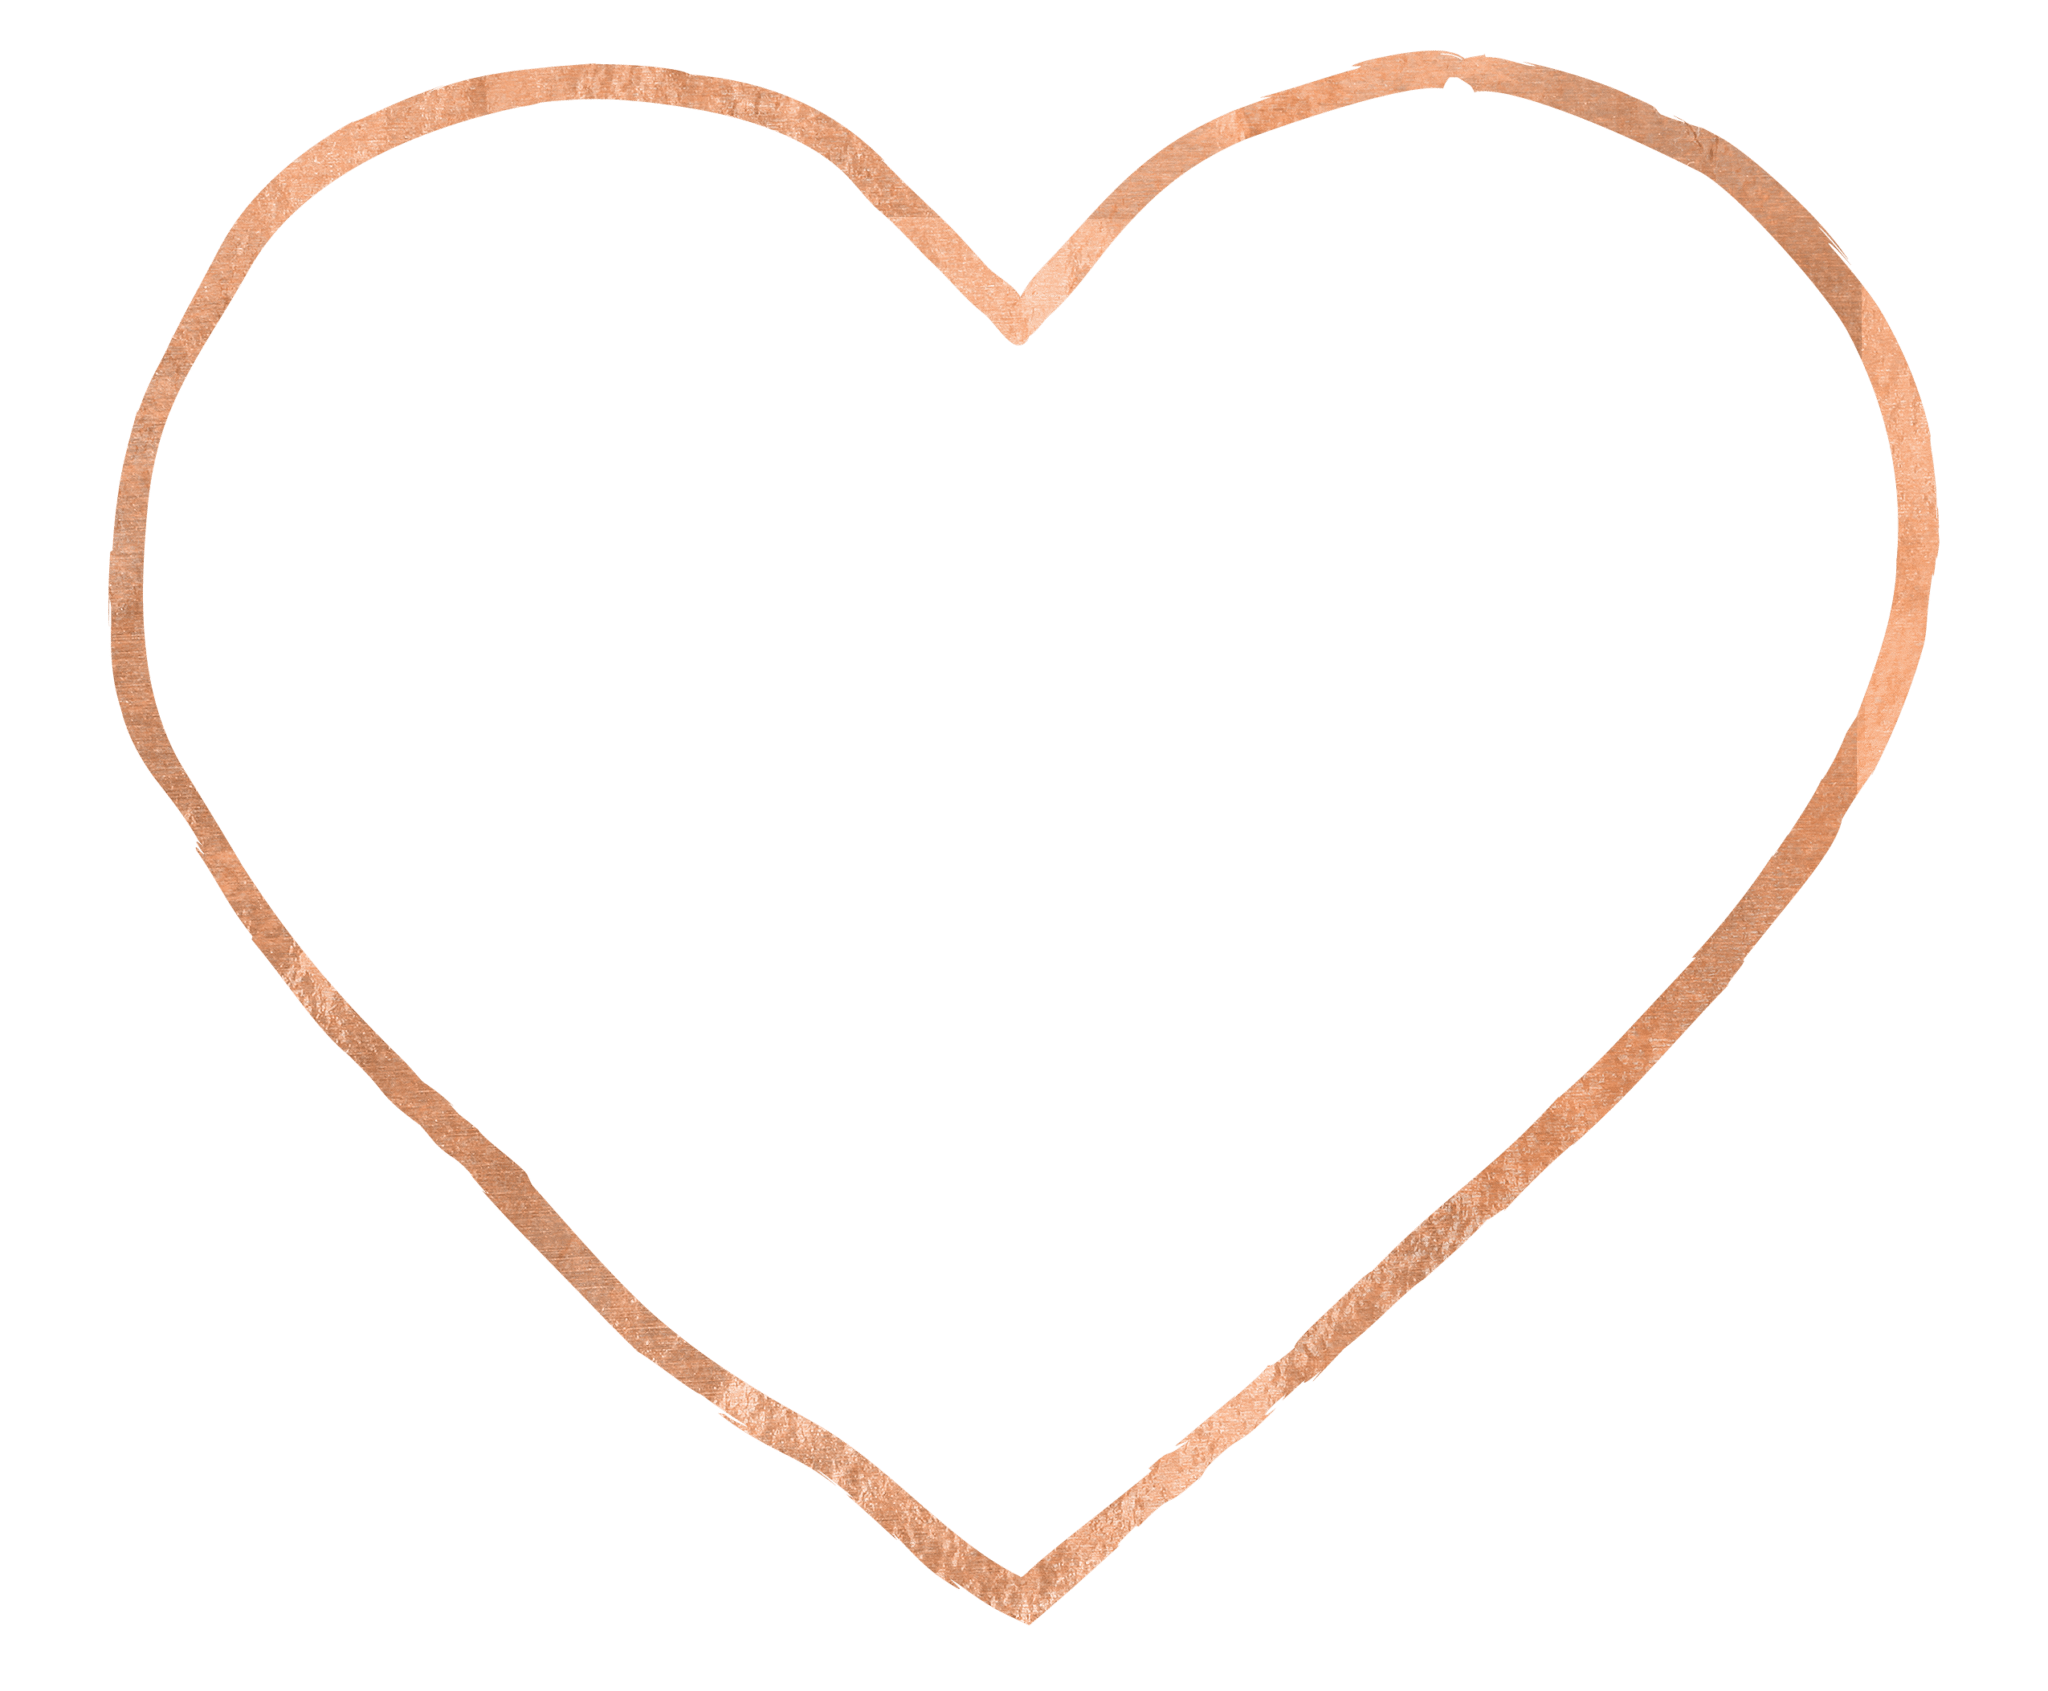 Heart, png rose gold. Keeping your heart open